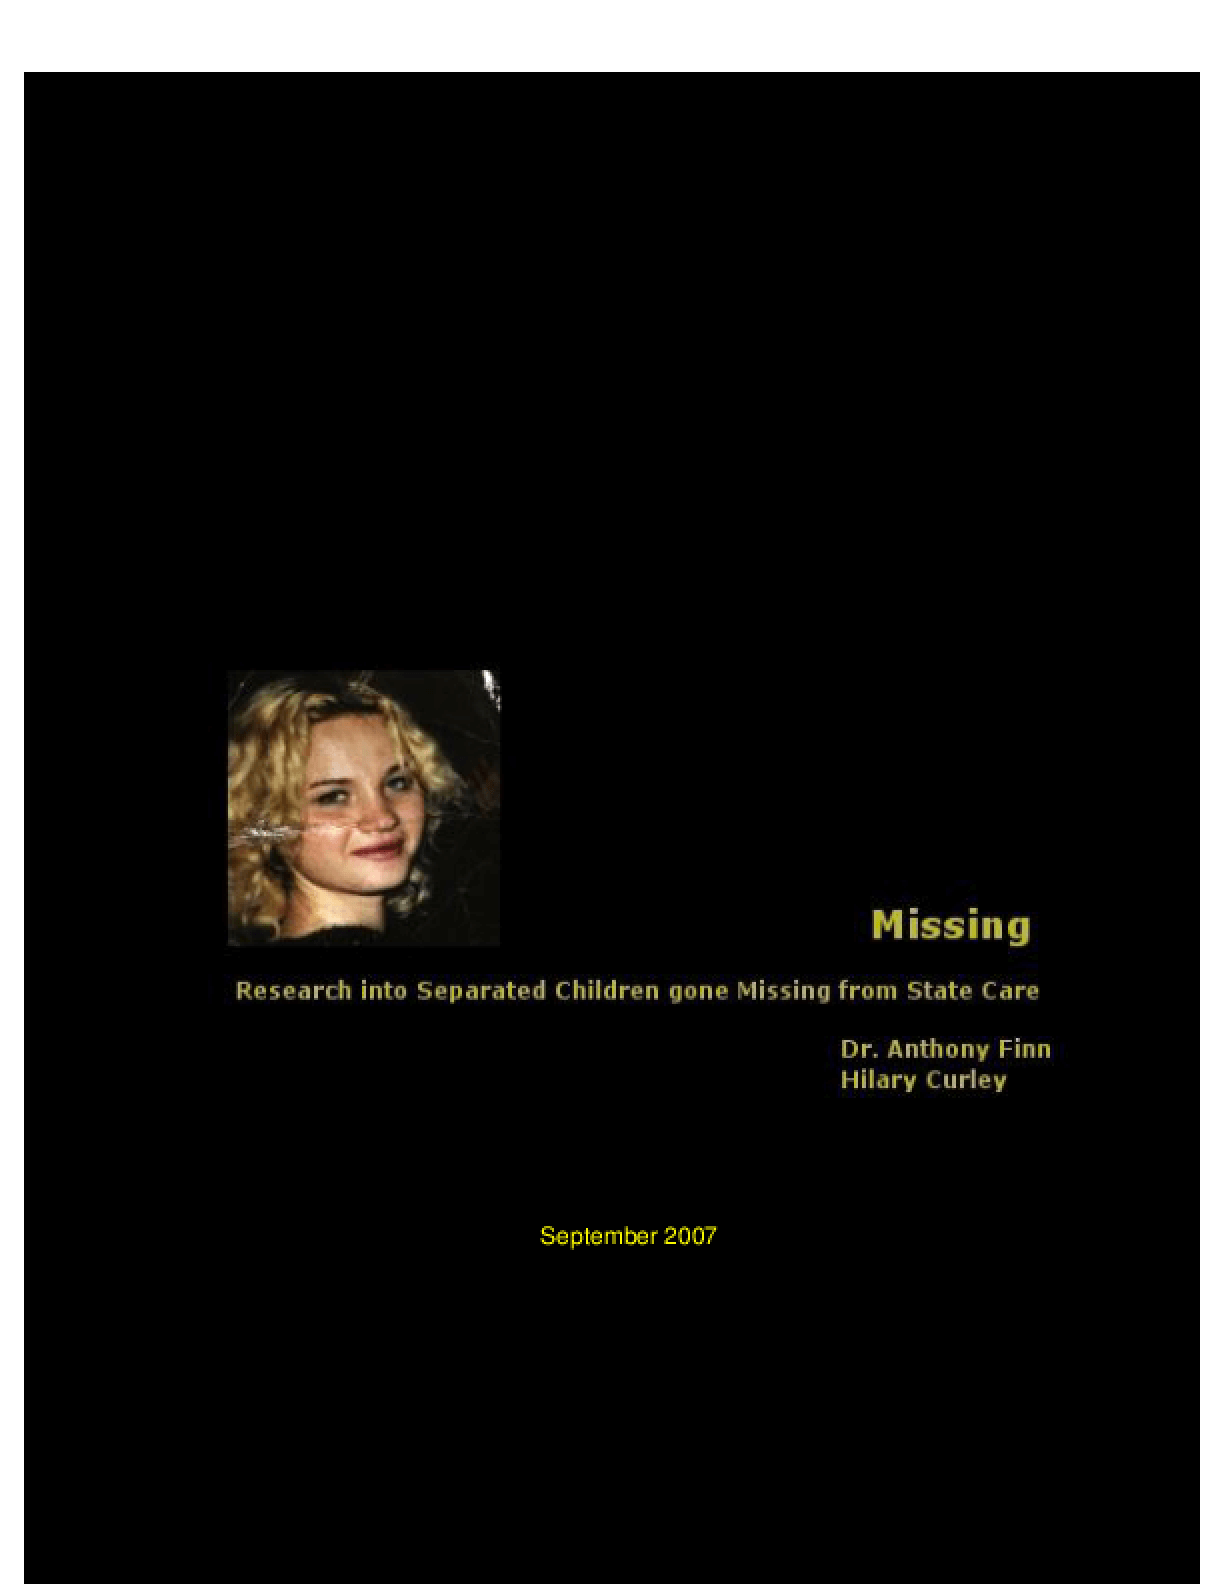 Missing: Research Into Separated Children Gone Missing From State Care